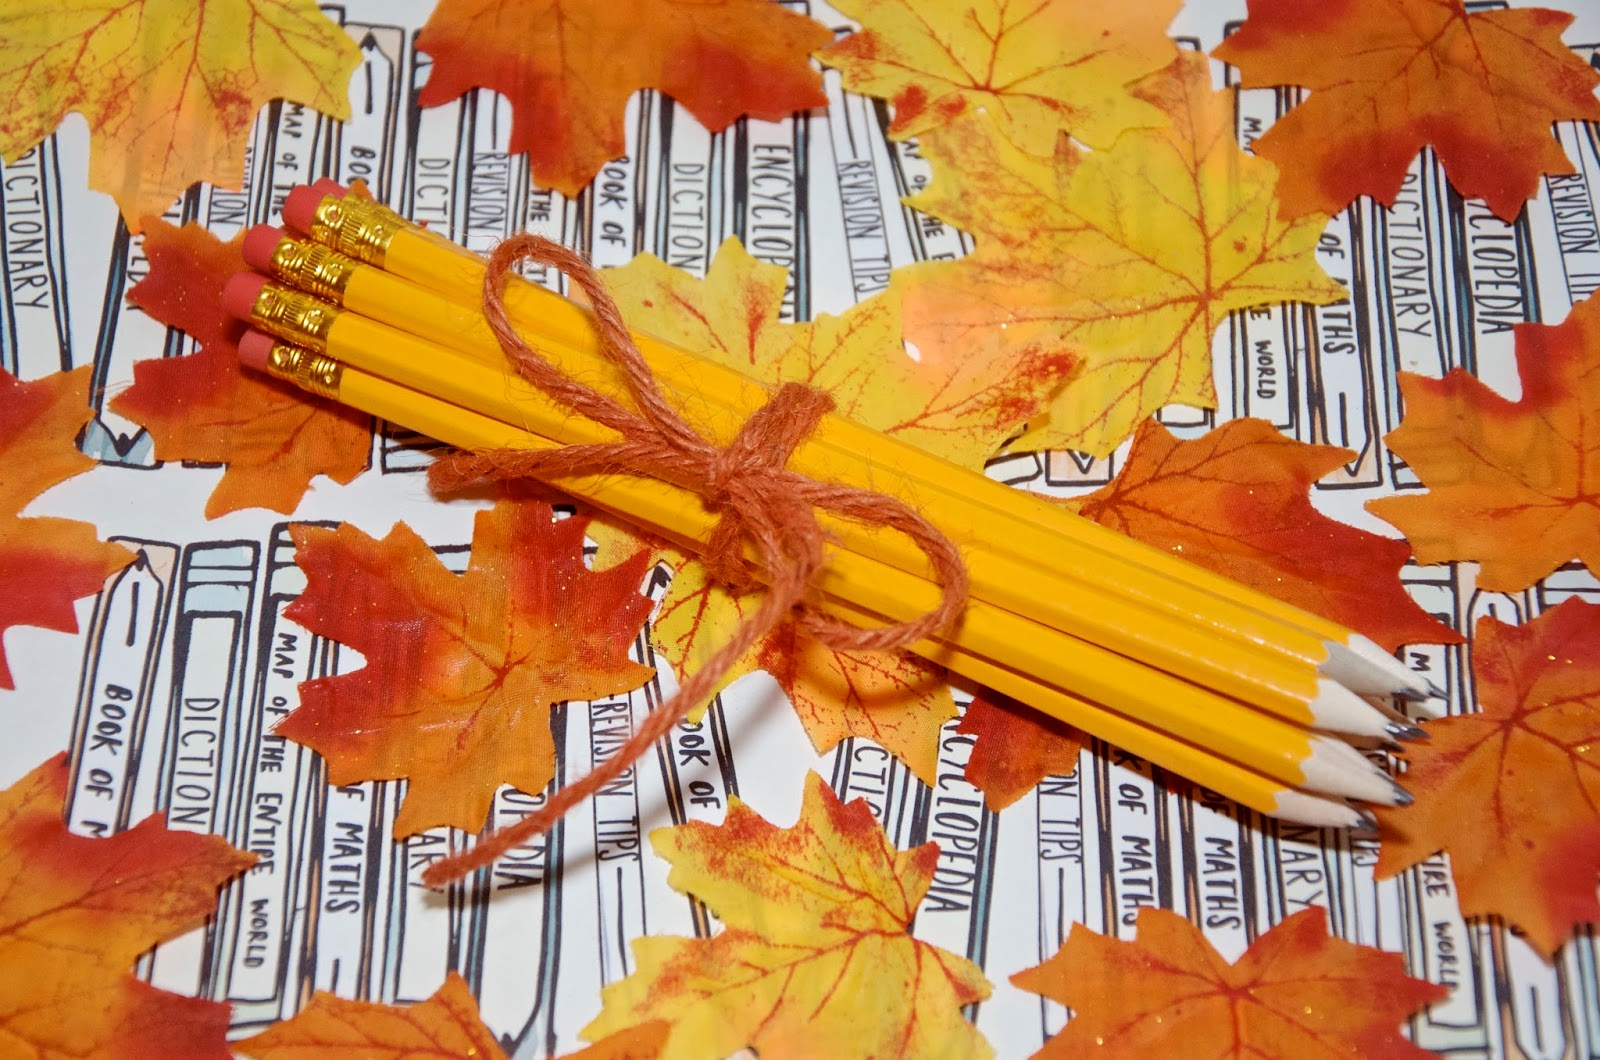 Pencils & leaves